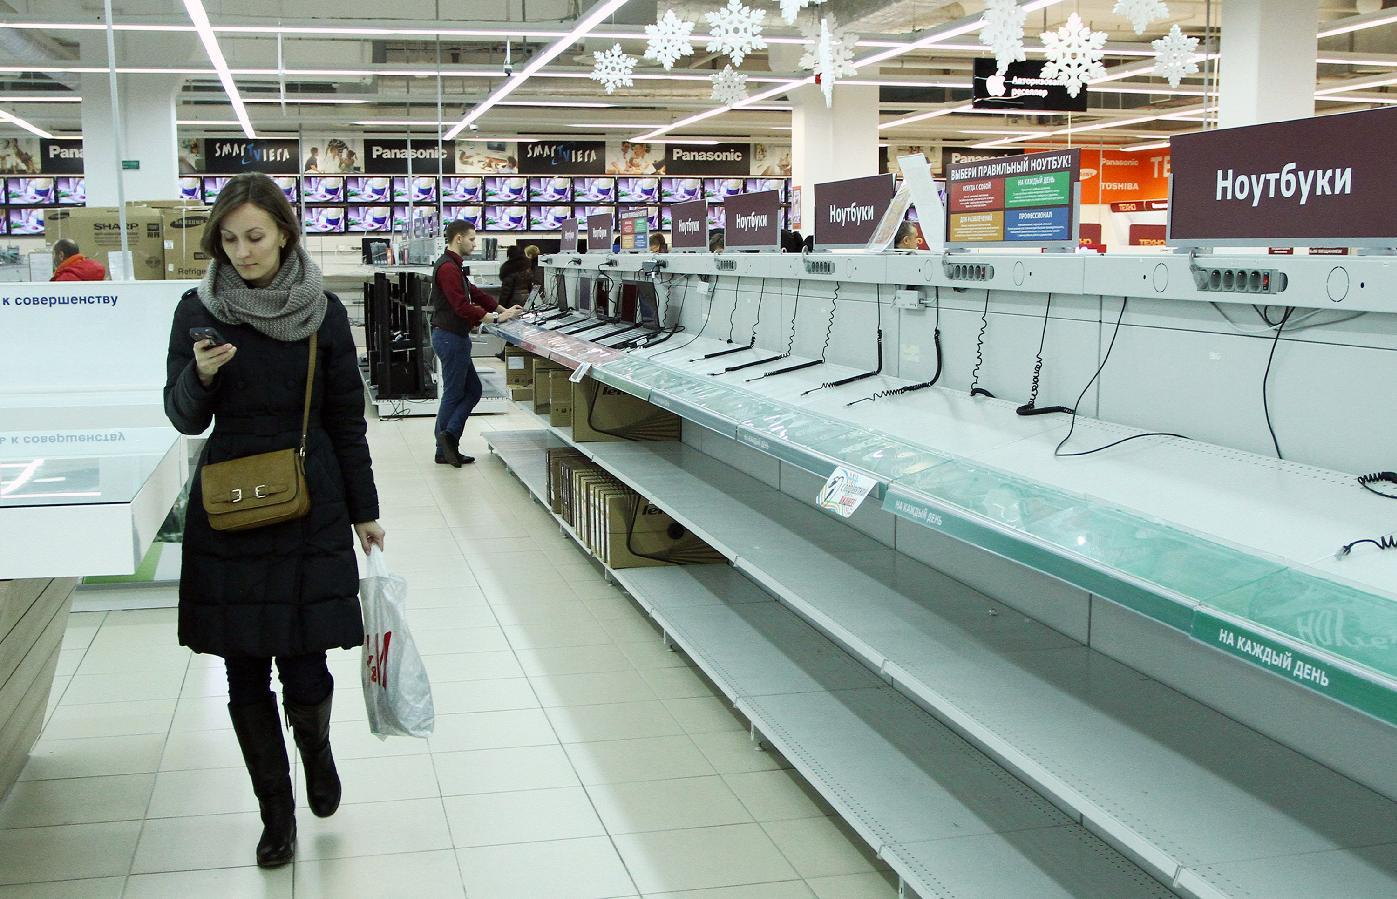 Belarus blocks sites, closes stores to stem currency panic